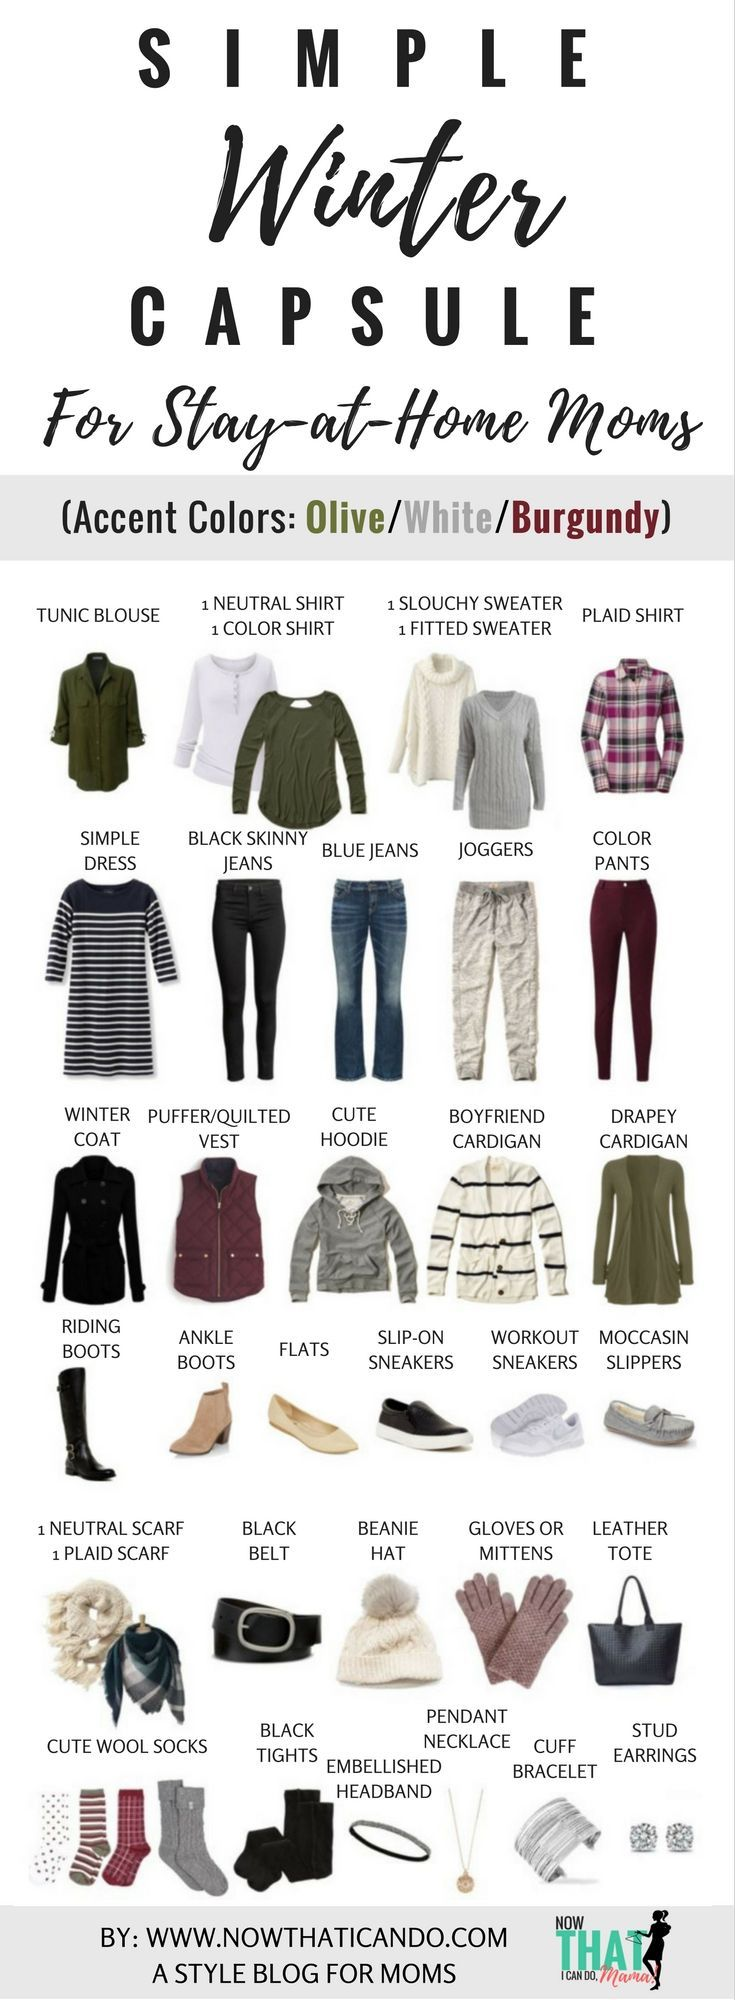 Basic Winter Wardrobe Plan (130+ Outfits) for Stay-at-Home Moms – FREE Download